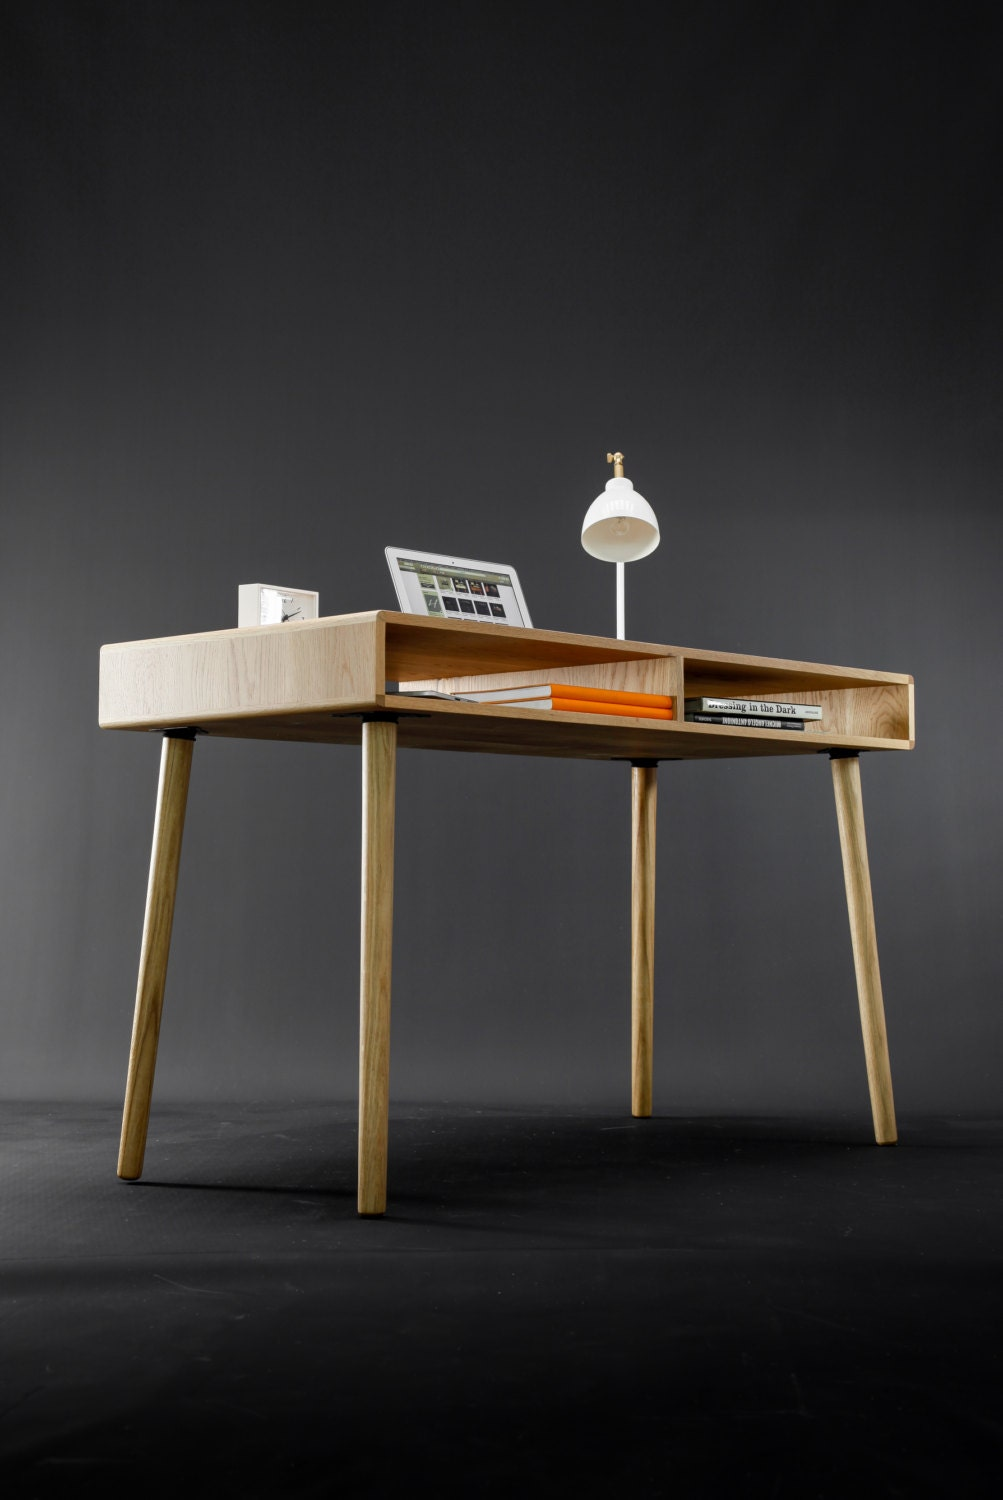 Awe Inspiring Modern Oak Desk With Open Cubbies Mid Century Design Gmtry Best Dining Table And Chair Ideas Images Gmtryco